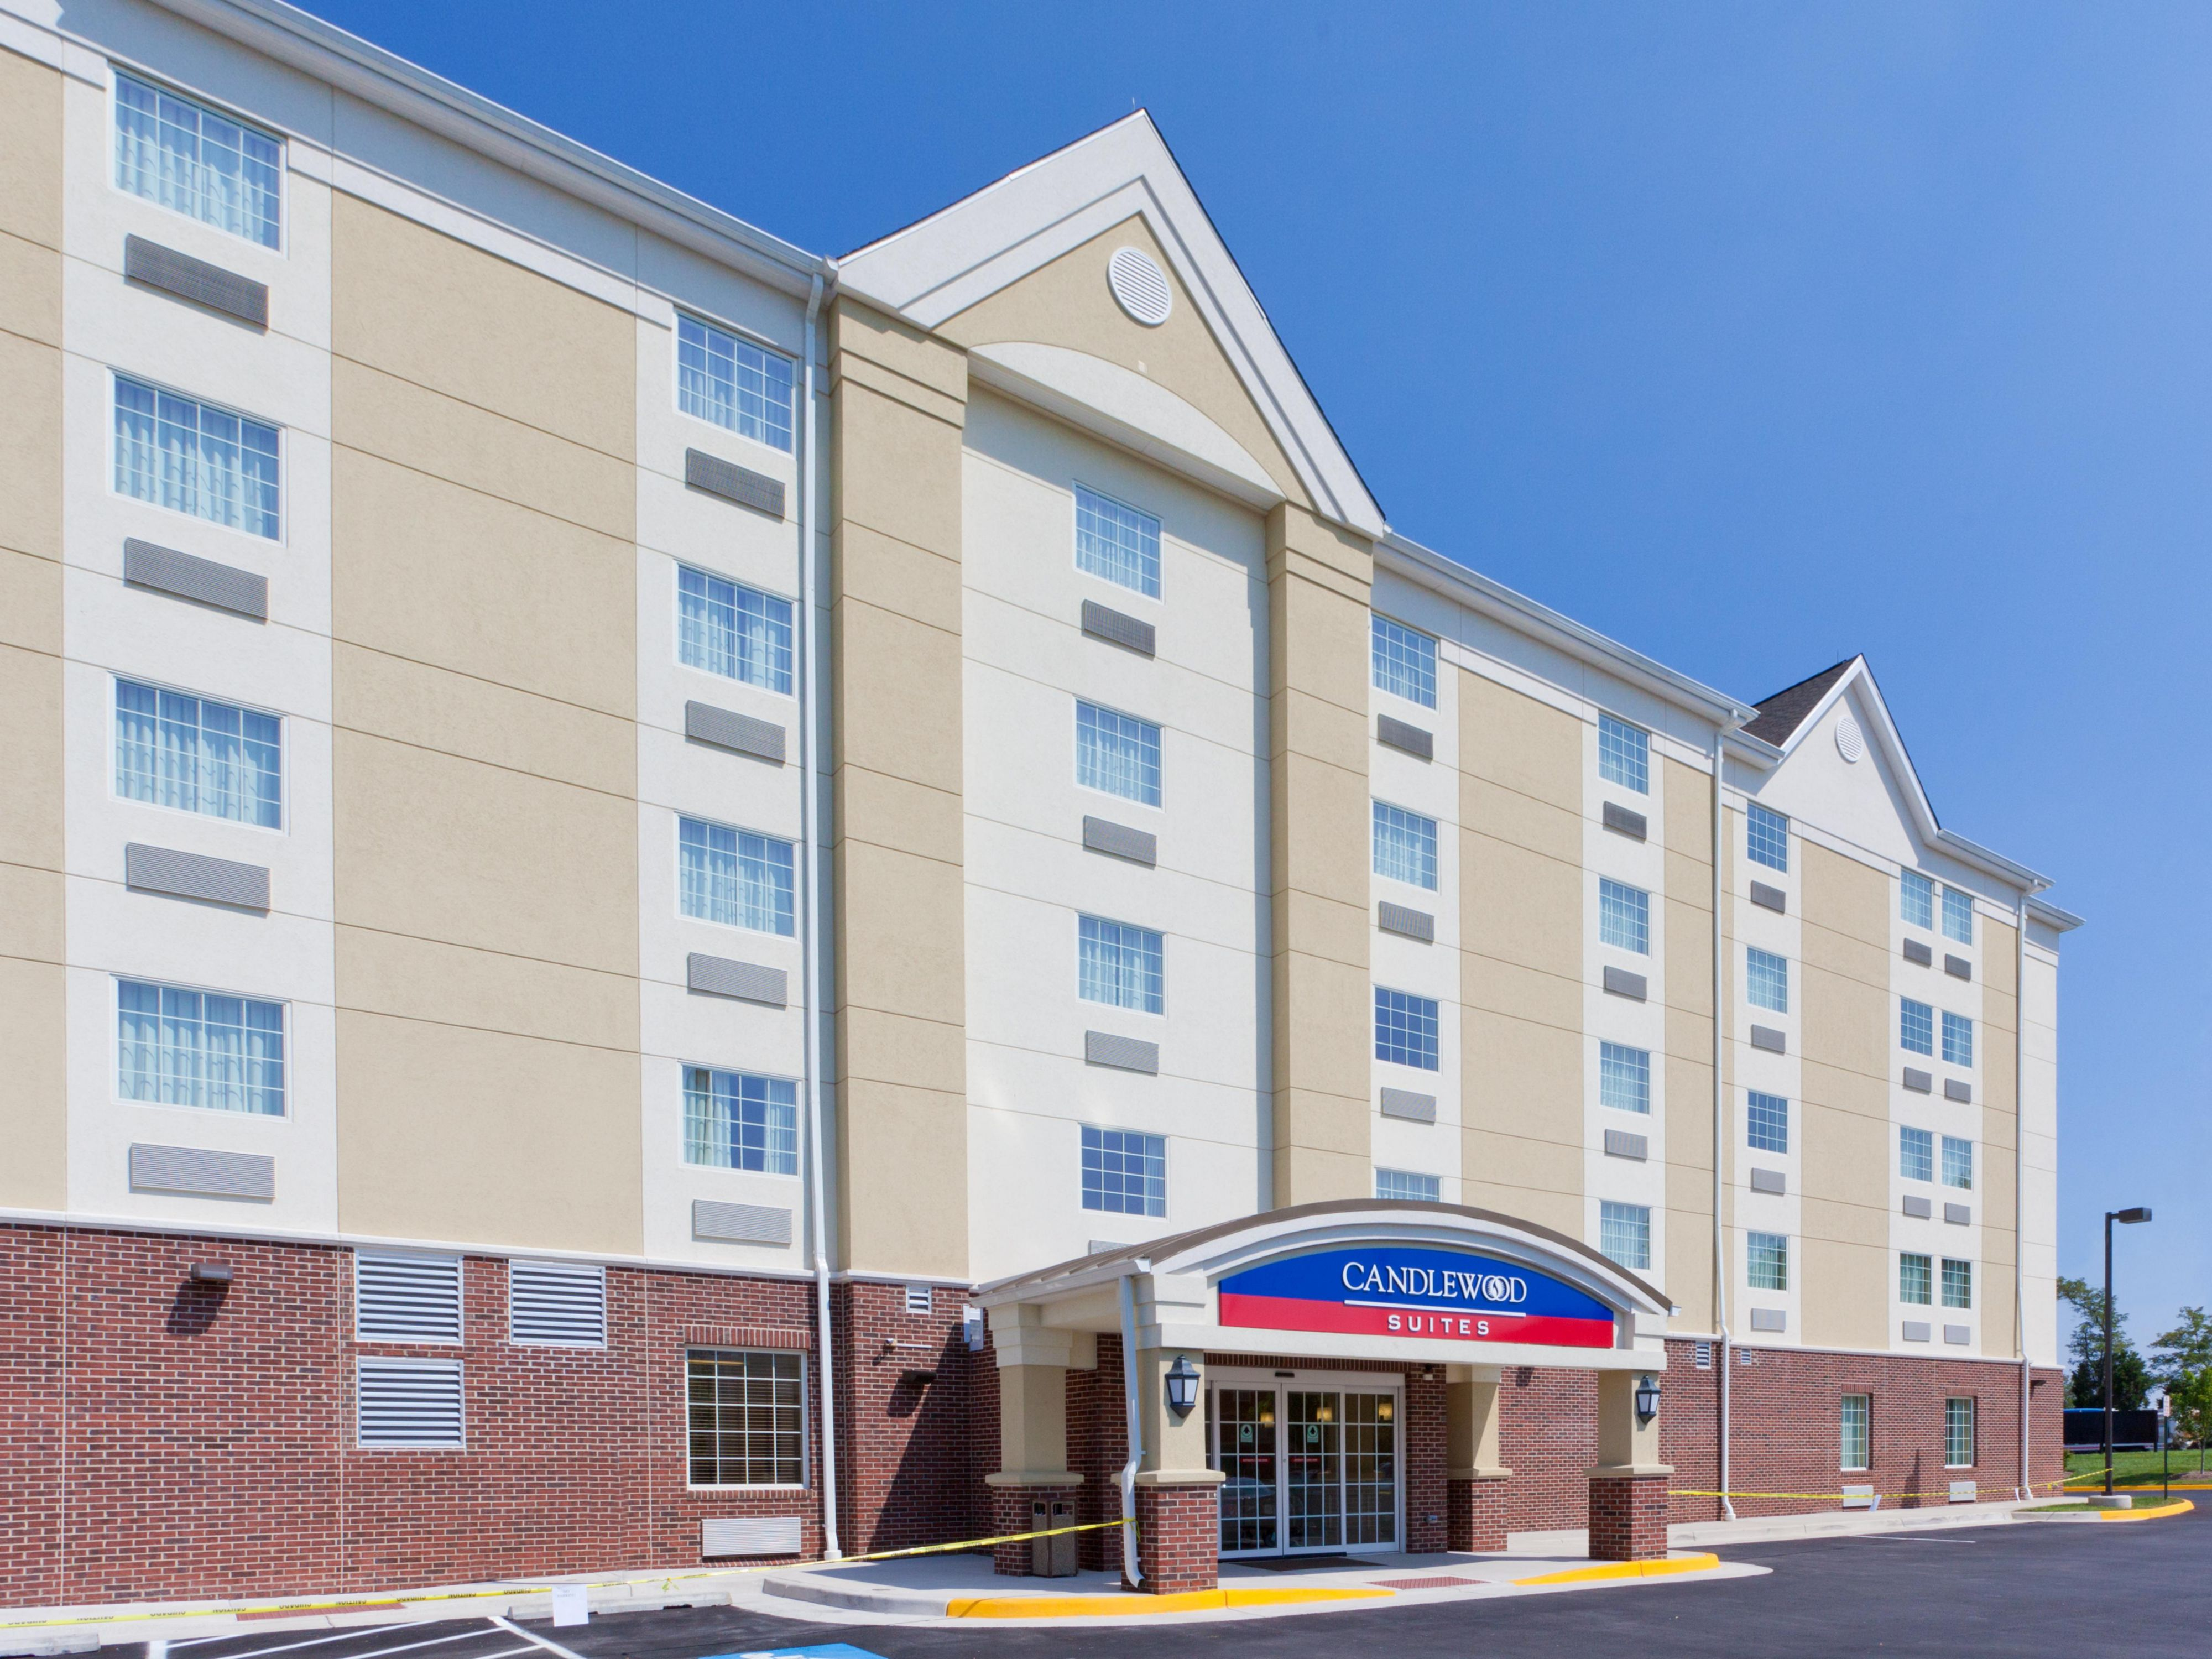 Manassas Hotels Candlewood Suites Manassas Extended Stay Hotel in